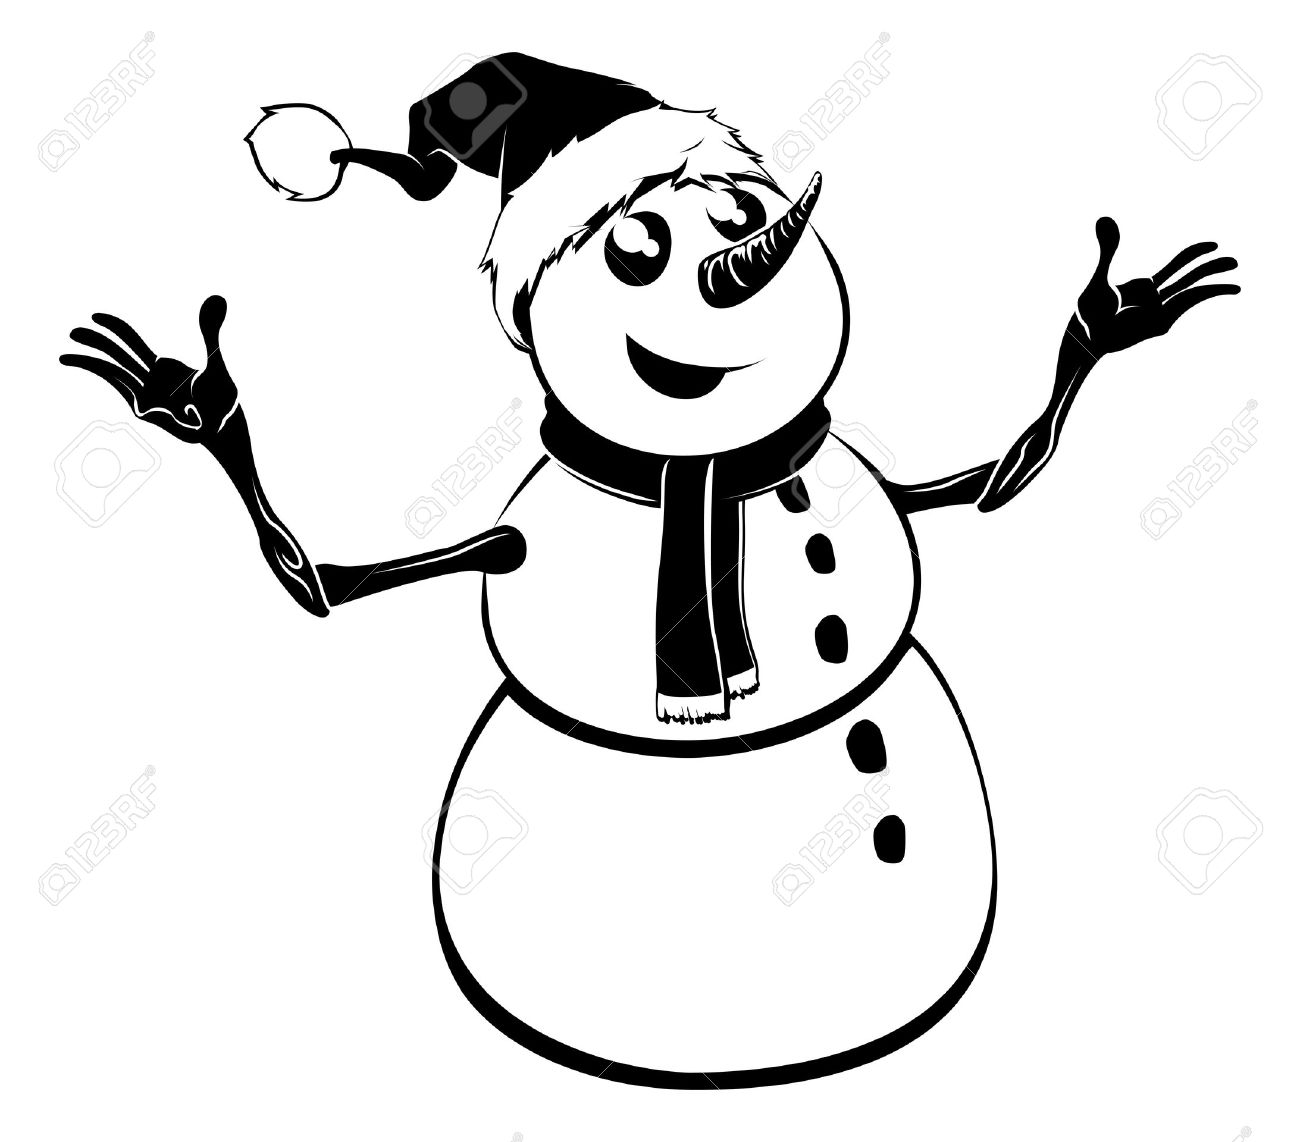 5,190 Snowman Face Stock Vector Illustration And Royalty Free.